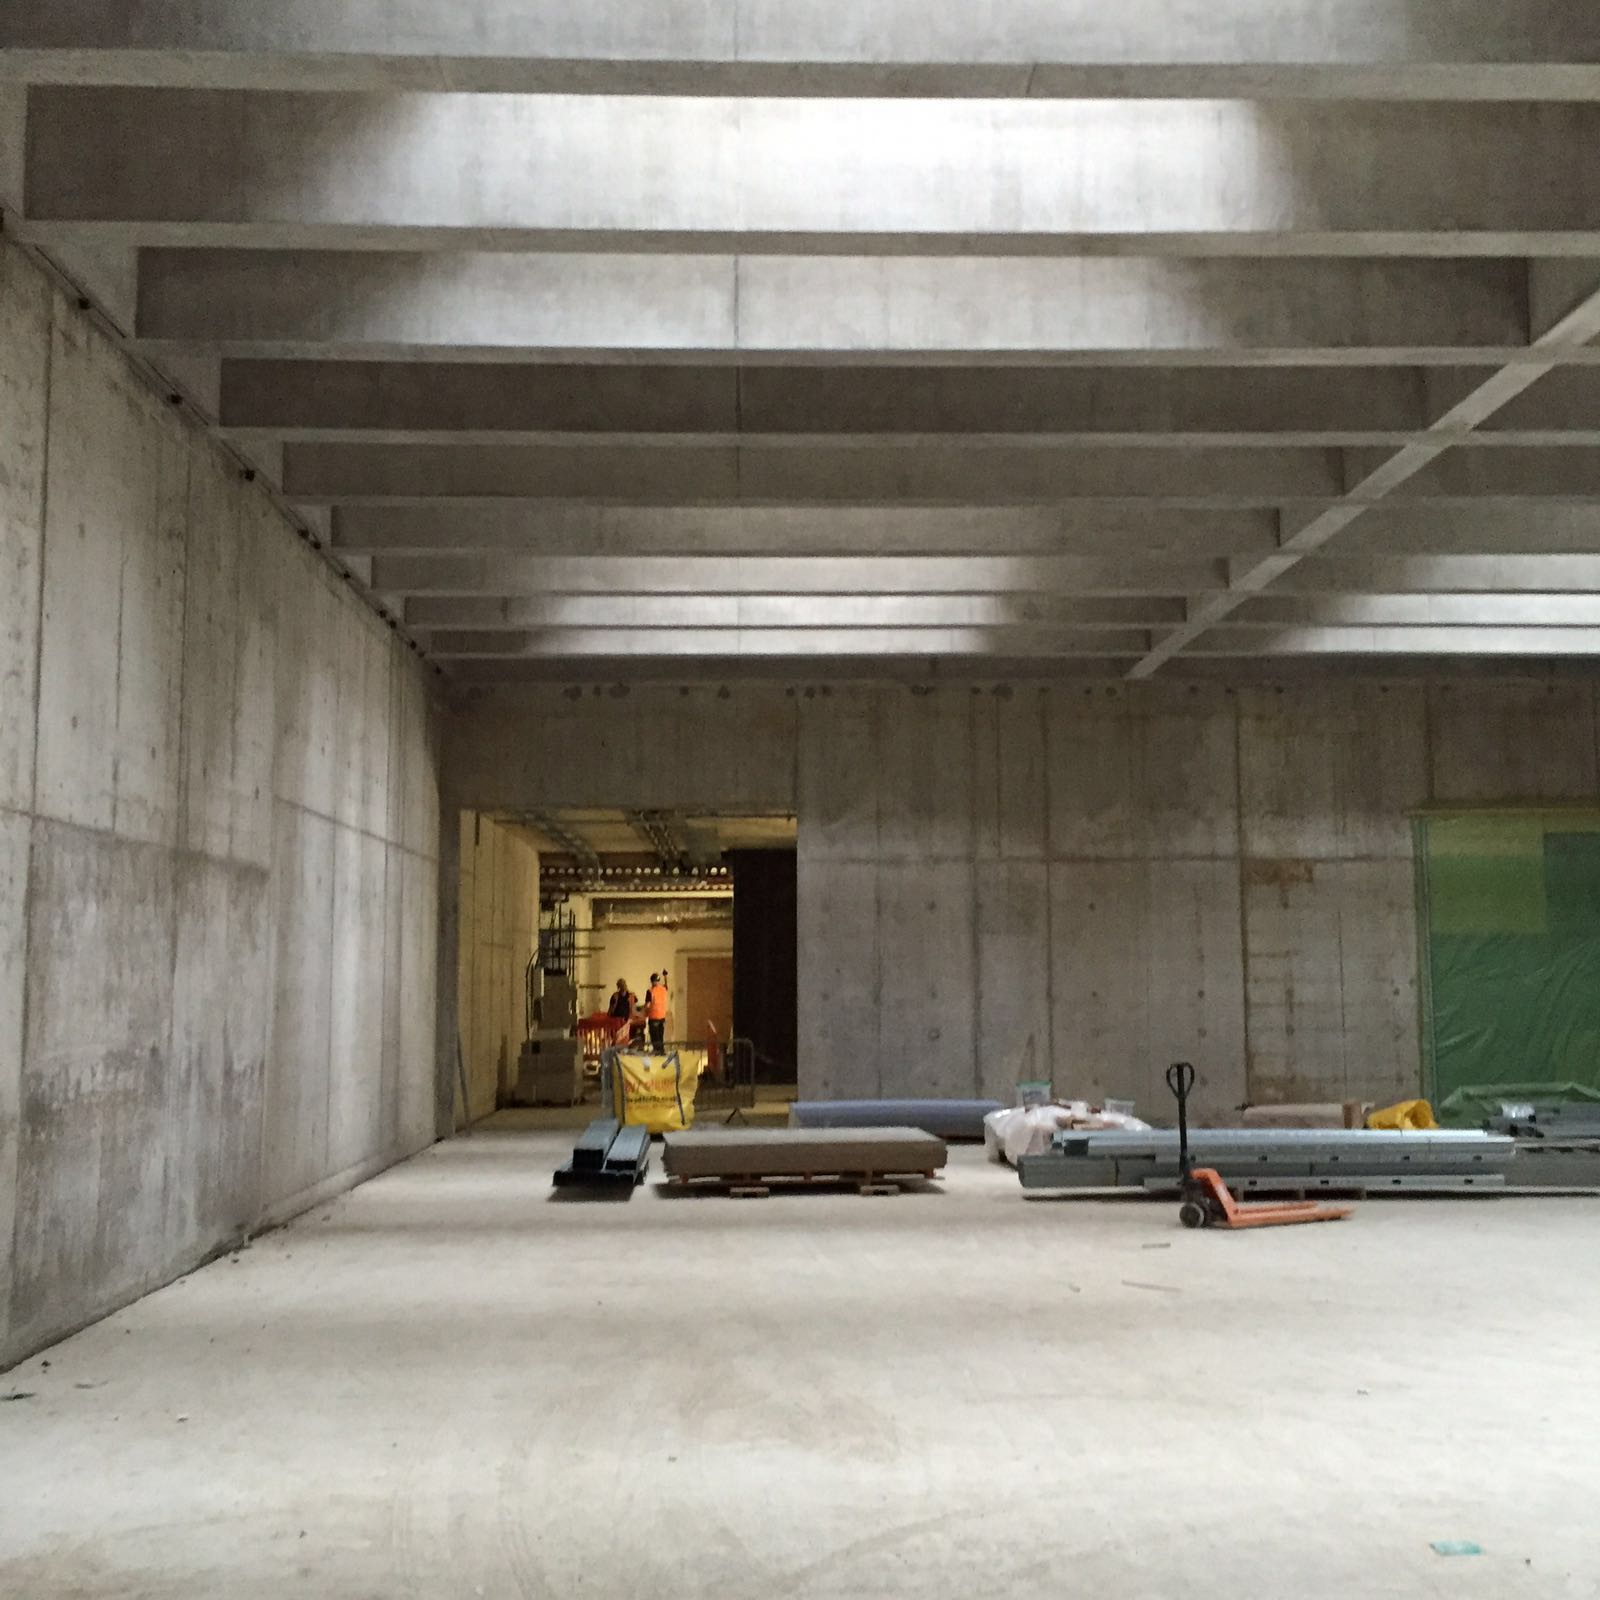 Tate Gallery Extension & Refurbishment